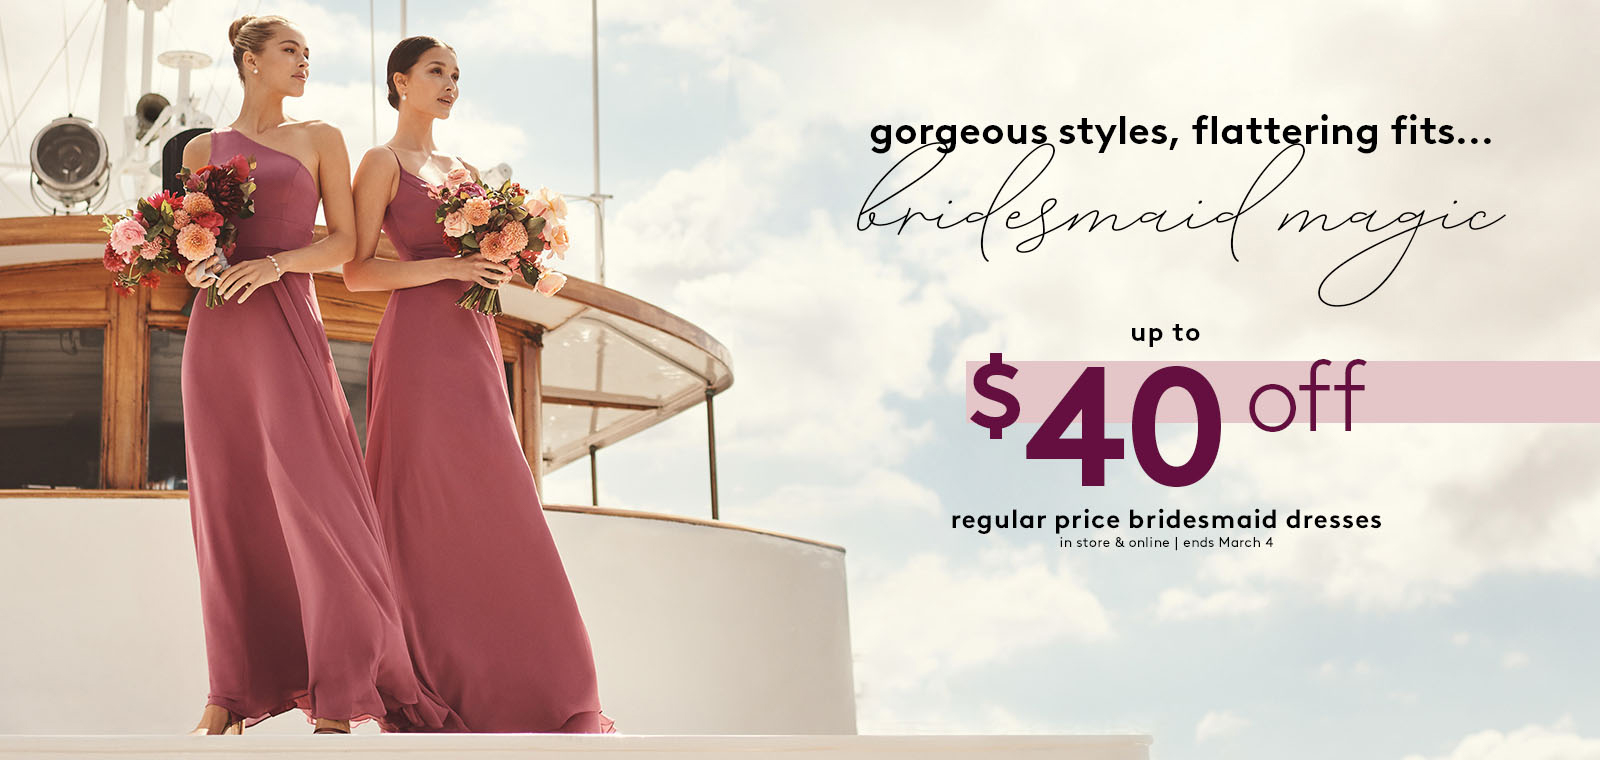 ENDS MONDAY! - presidents day sale - regular price wedding dresses, up to $300 off - originally $698 - $1,400 | in-store and online